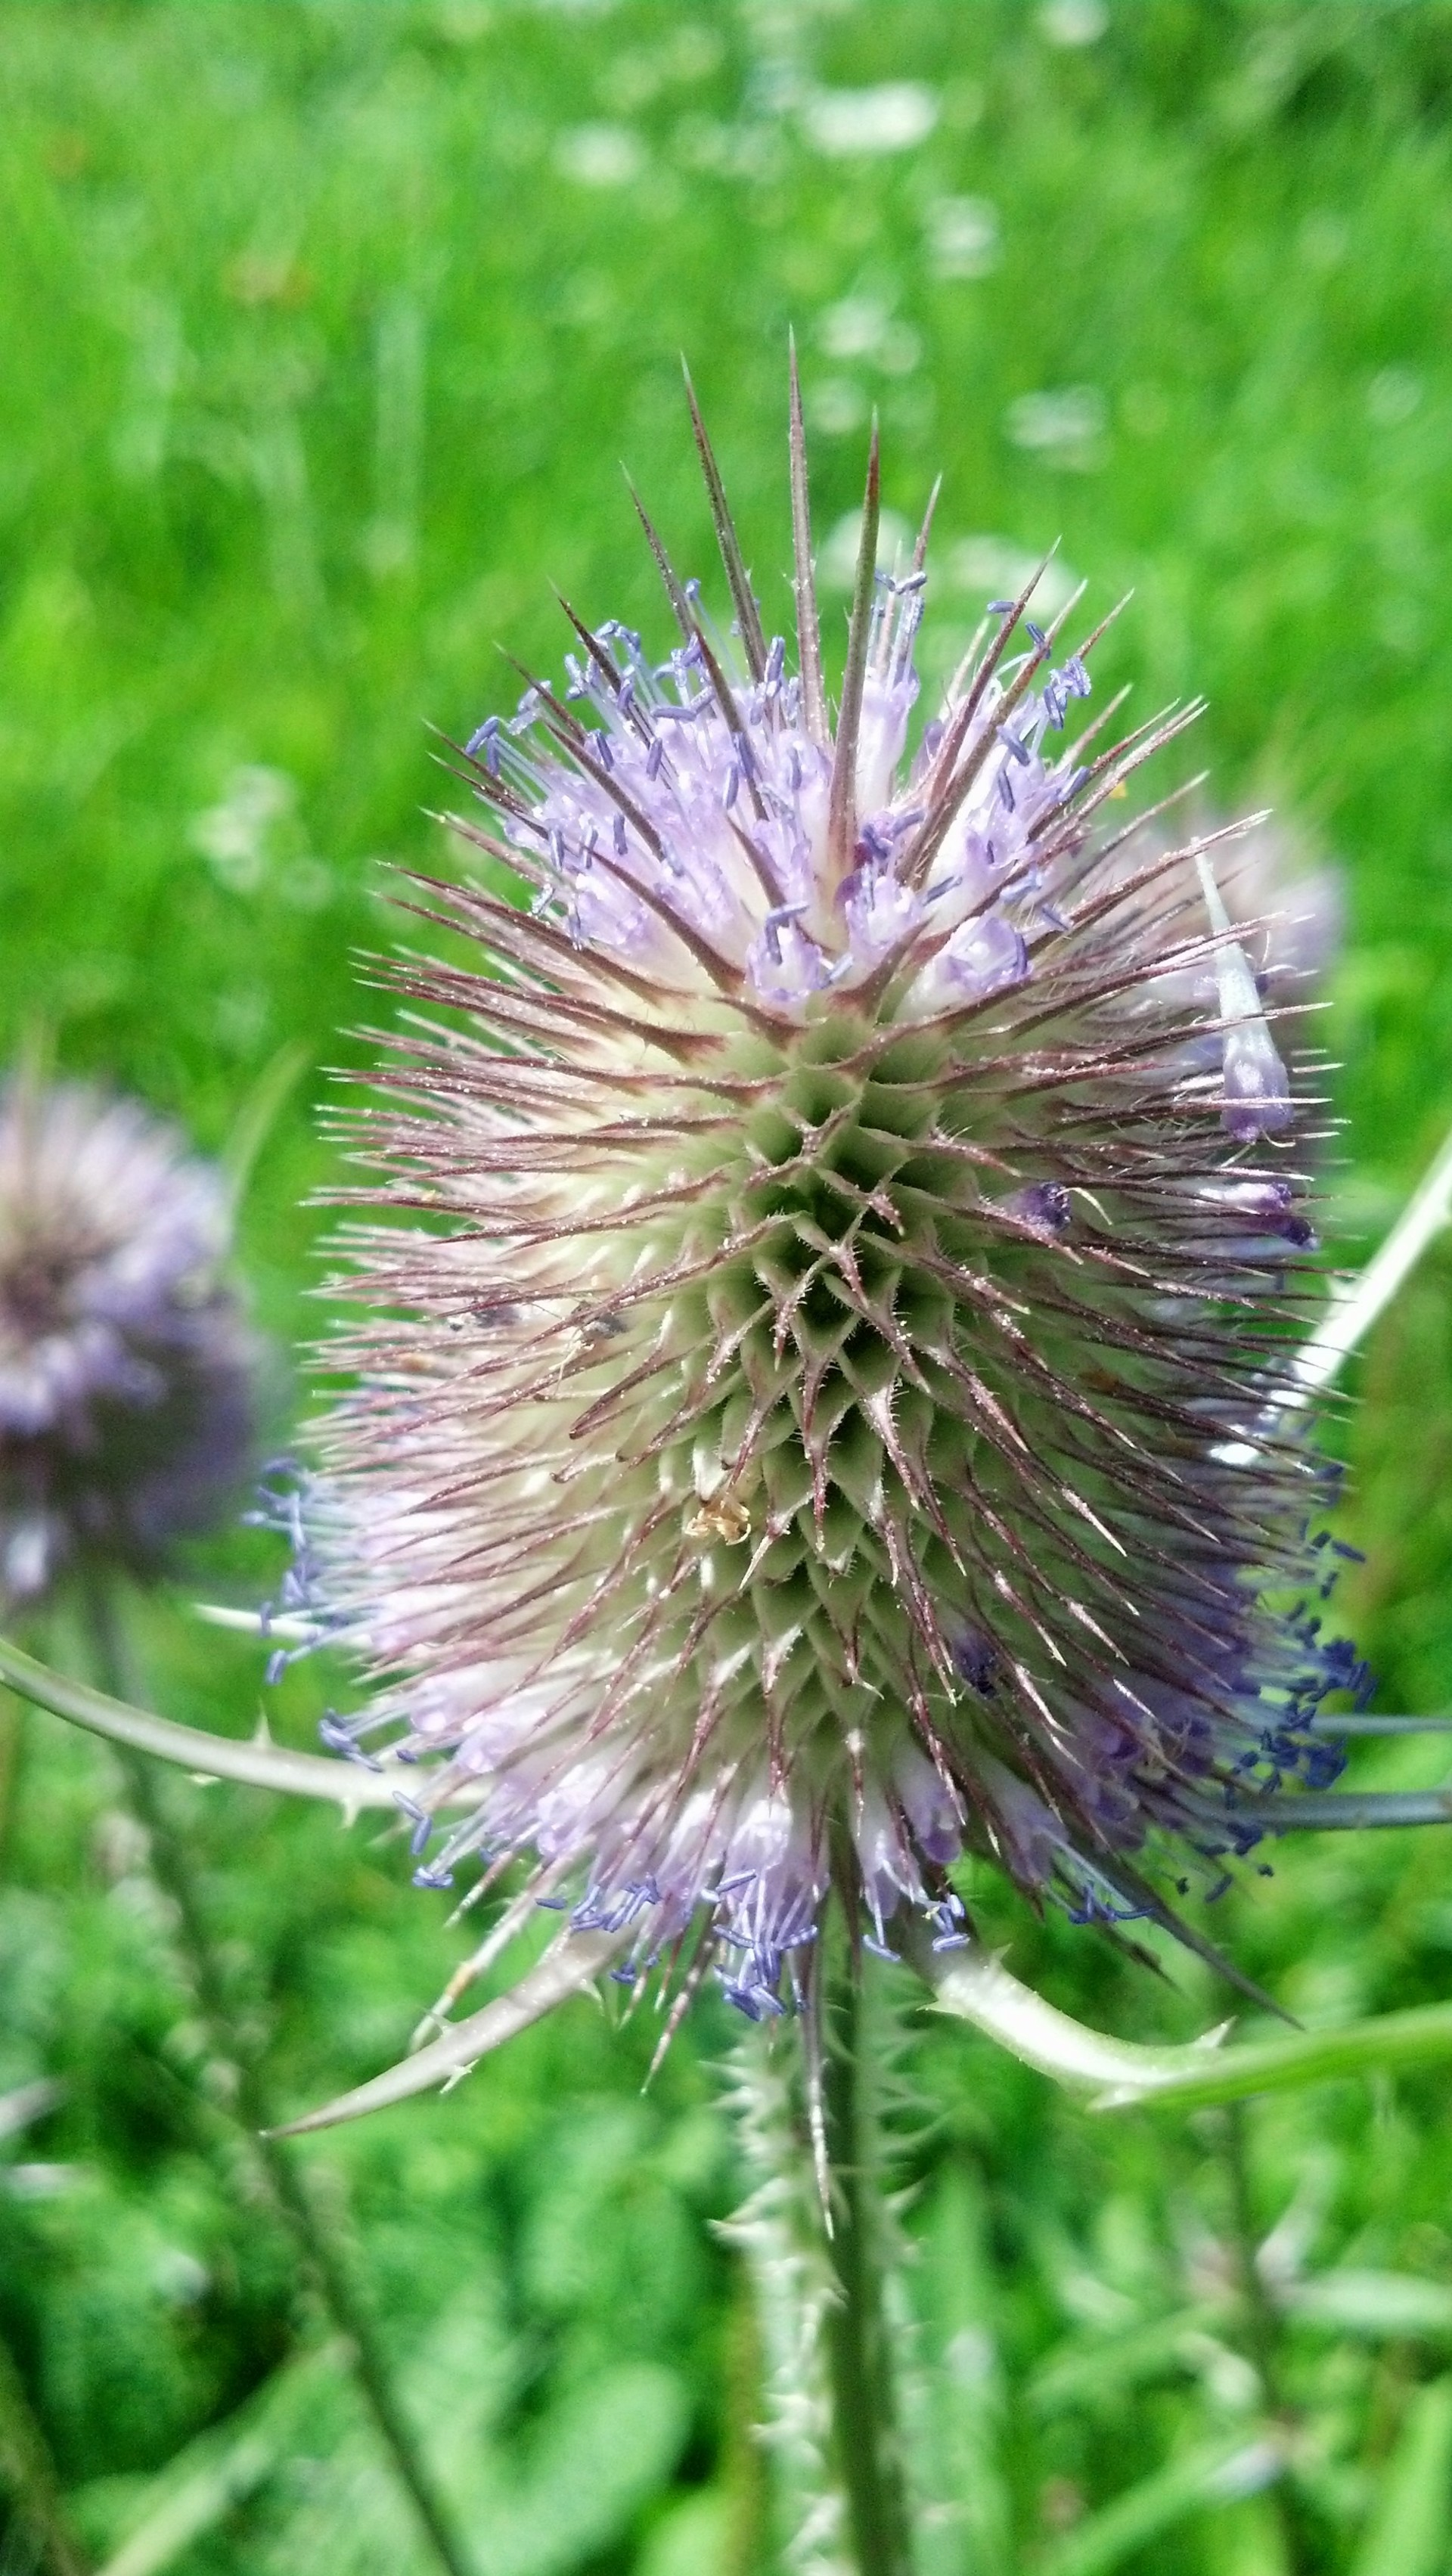 Purple Prick. A Canadian Thistle blossom